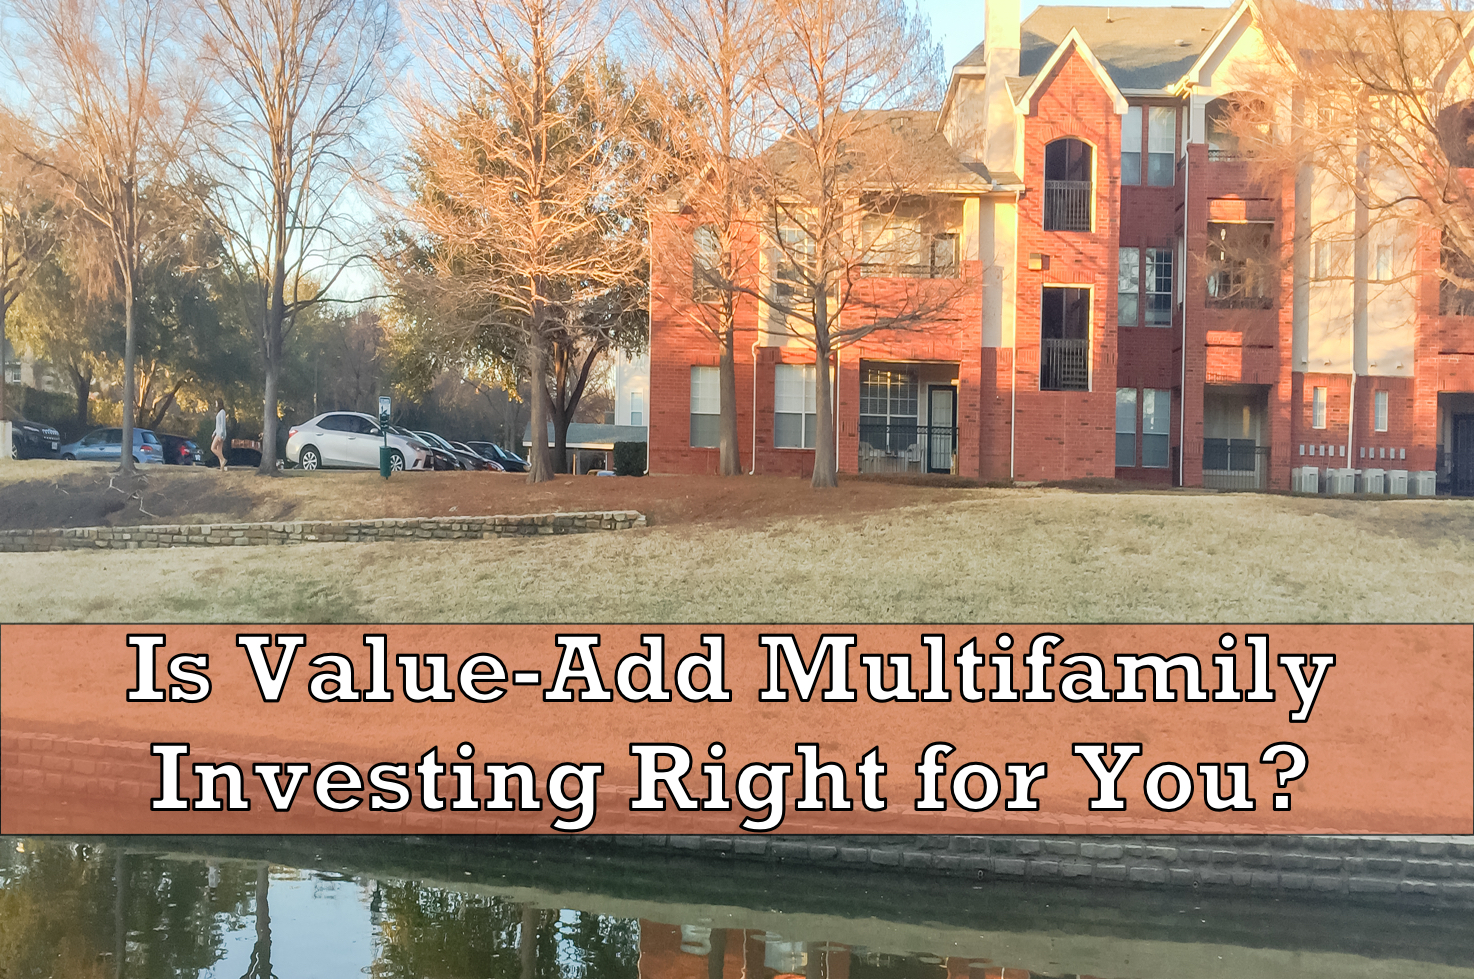 Why You Should Consider Value-Add Multifamily Investing